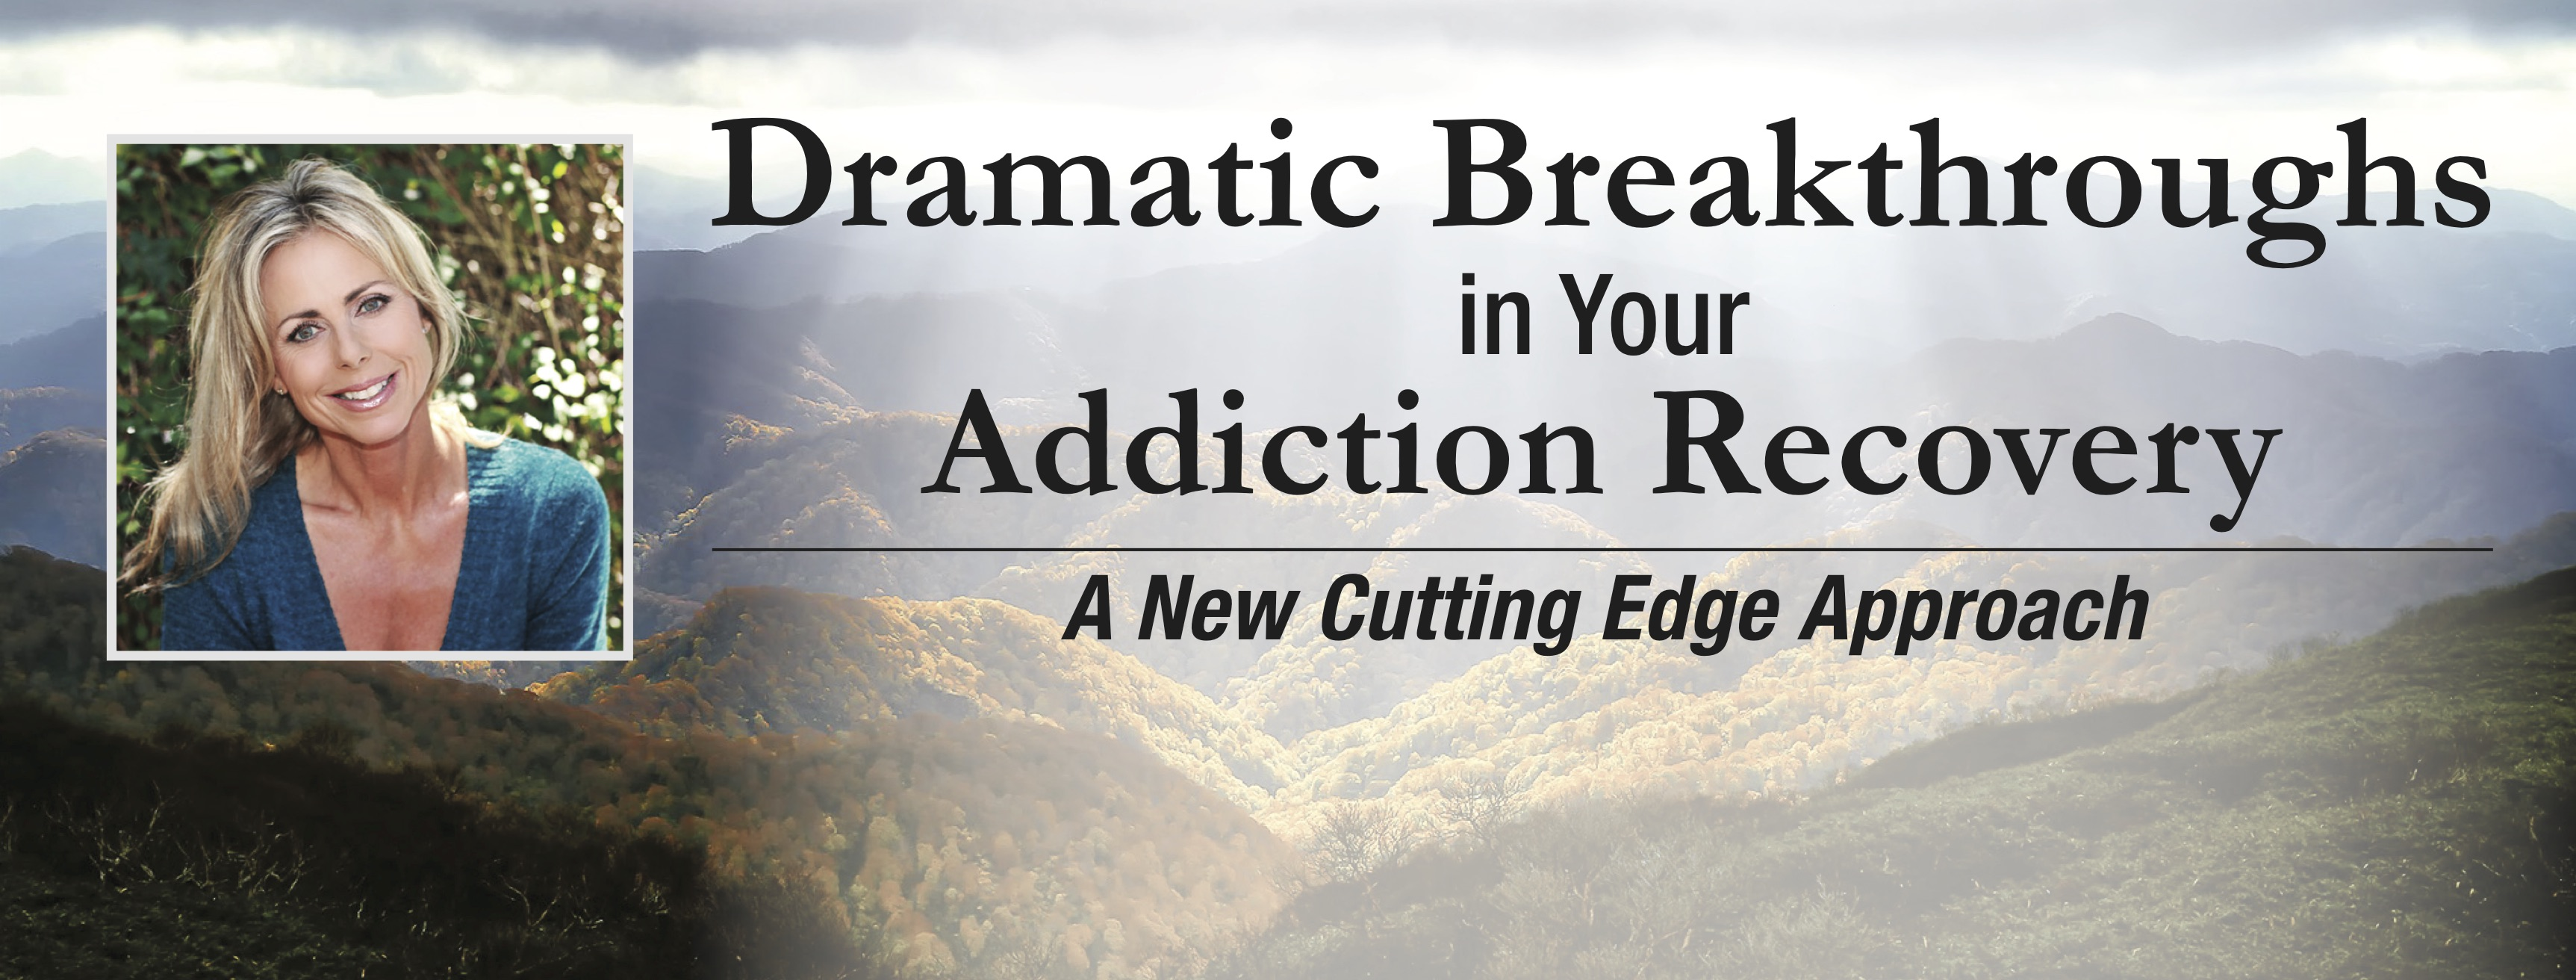 Dramatic Breakthroughs in Your Addiction Recovery